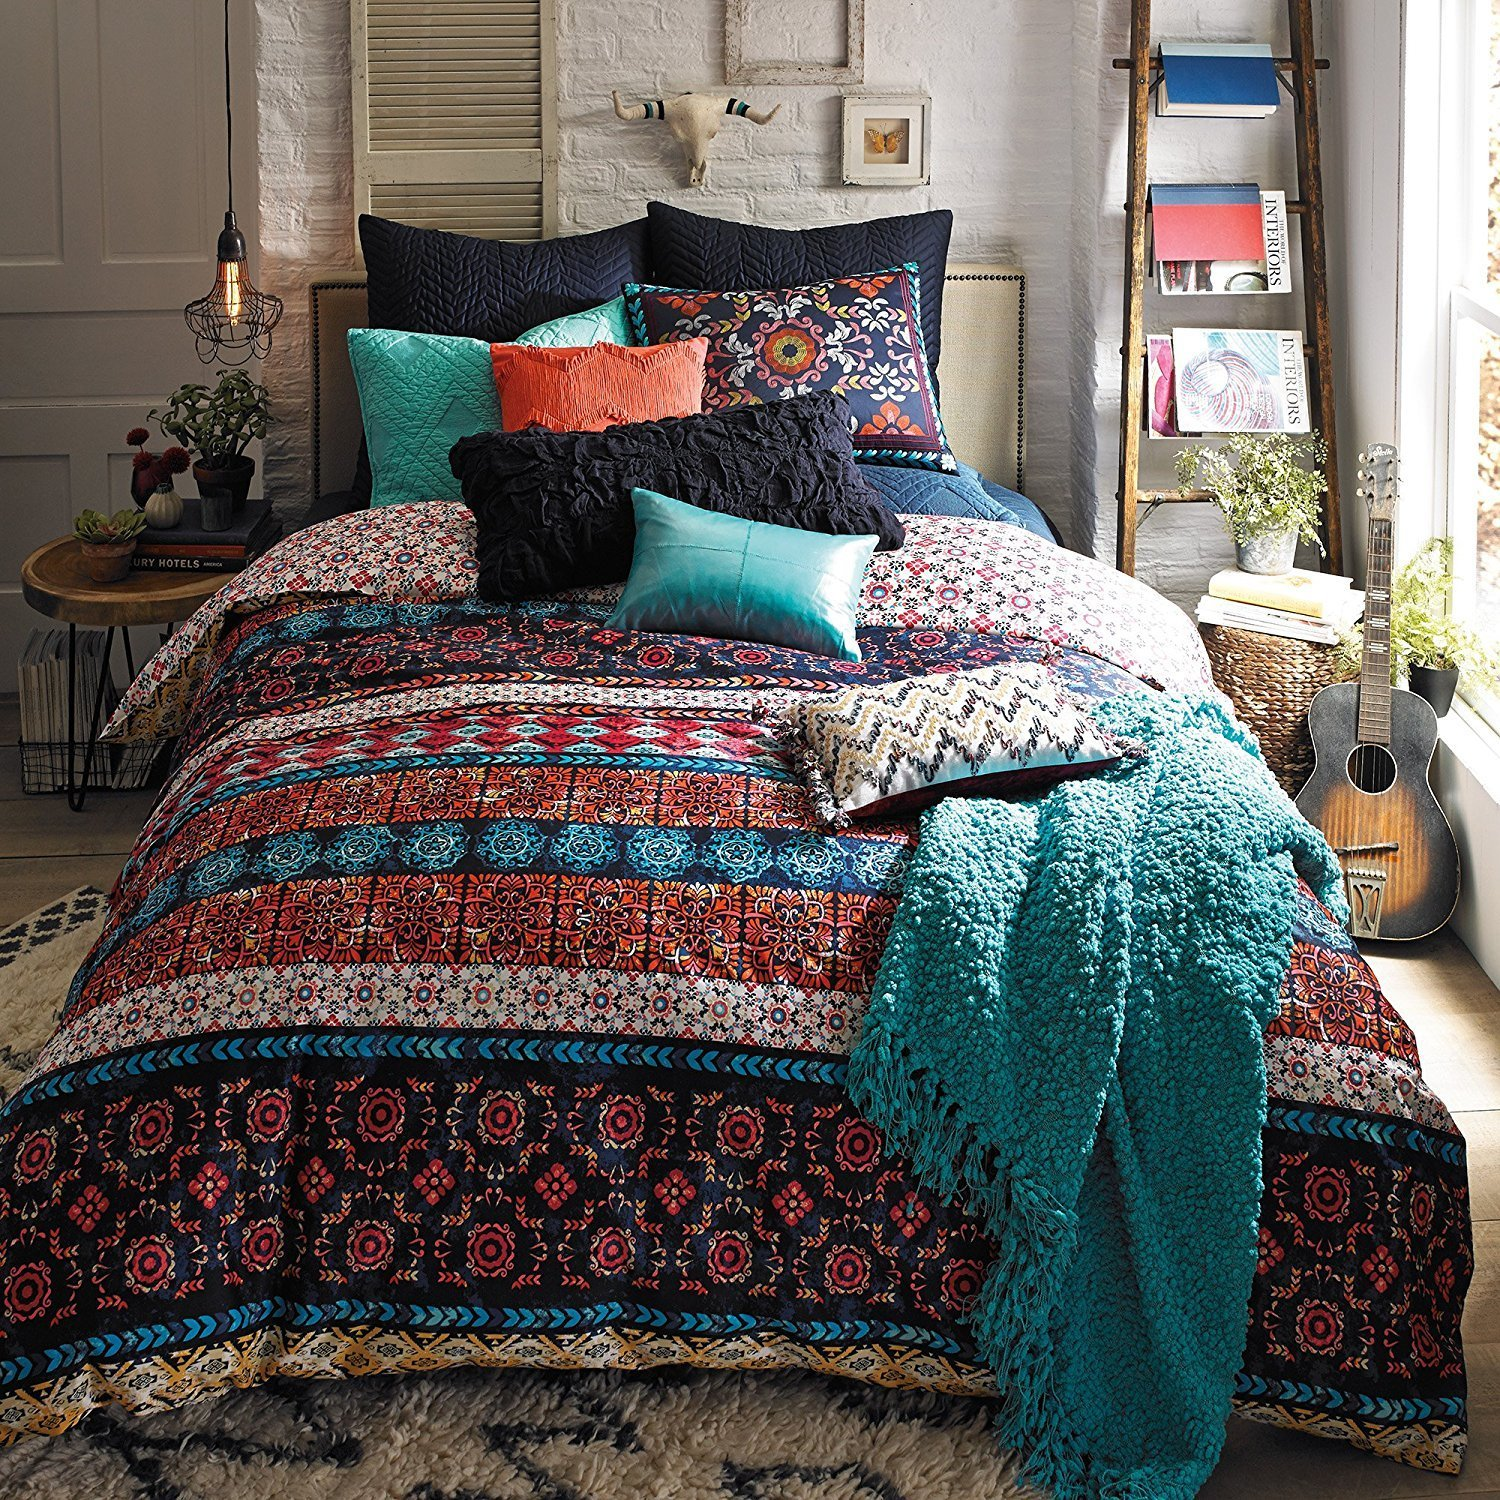 Best ⭐️ Best Queen Bedroom Sets Under 1000 ⋆ Best Cheap Reviews™ With Pictures